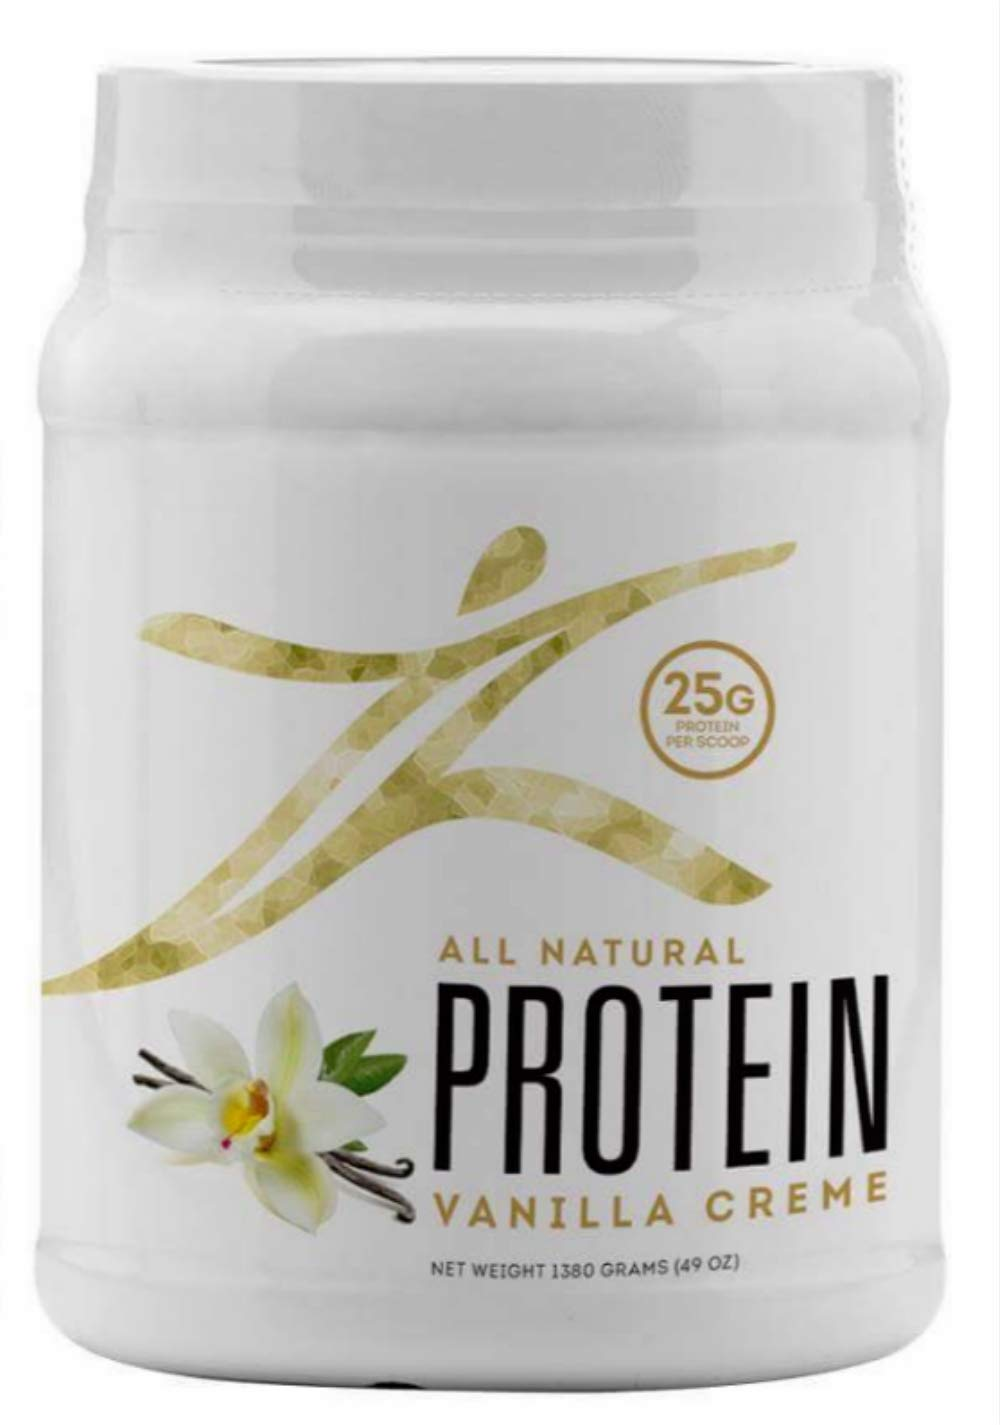 New Zurvita Zeal for Life Vanilla Creme Protein - with 25 Grams of Protein per Serving (11 More Than The Current Formula)